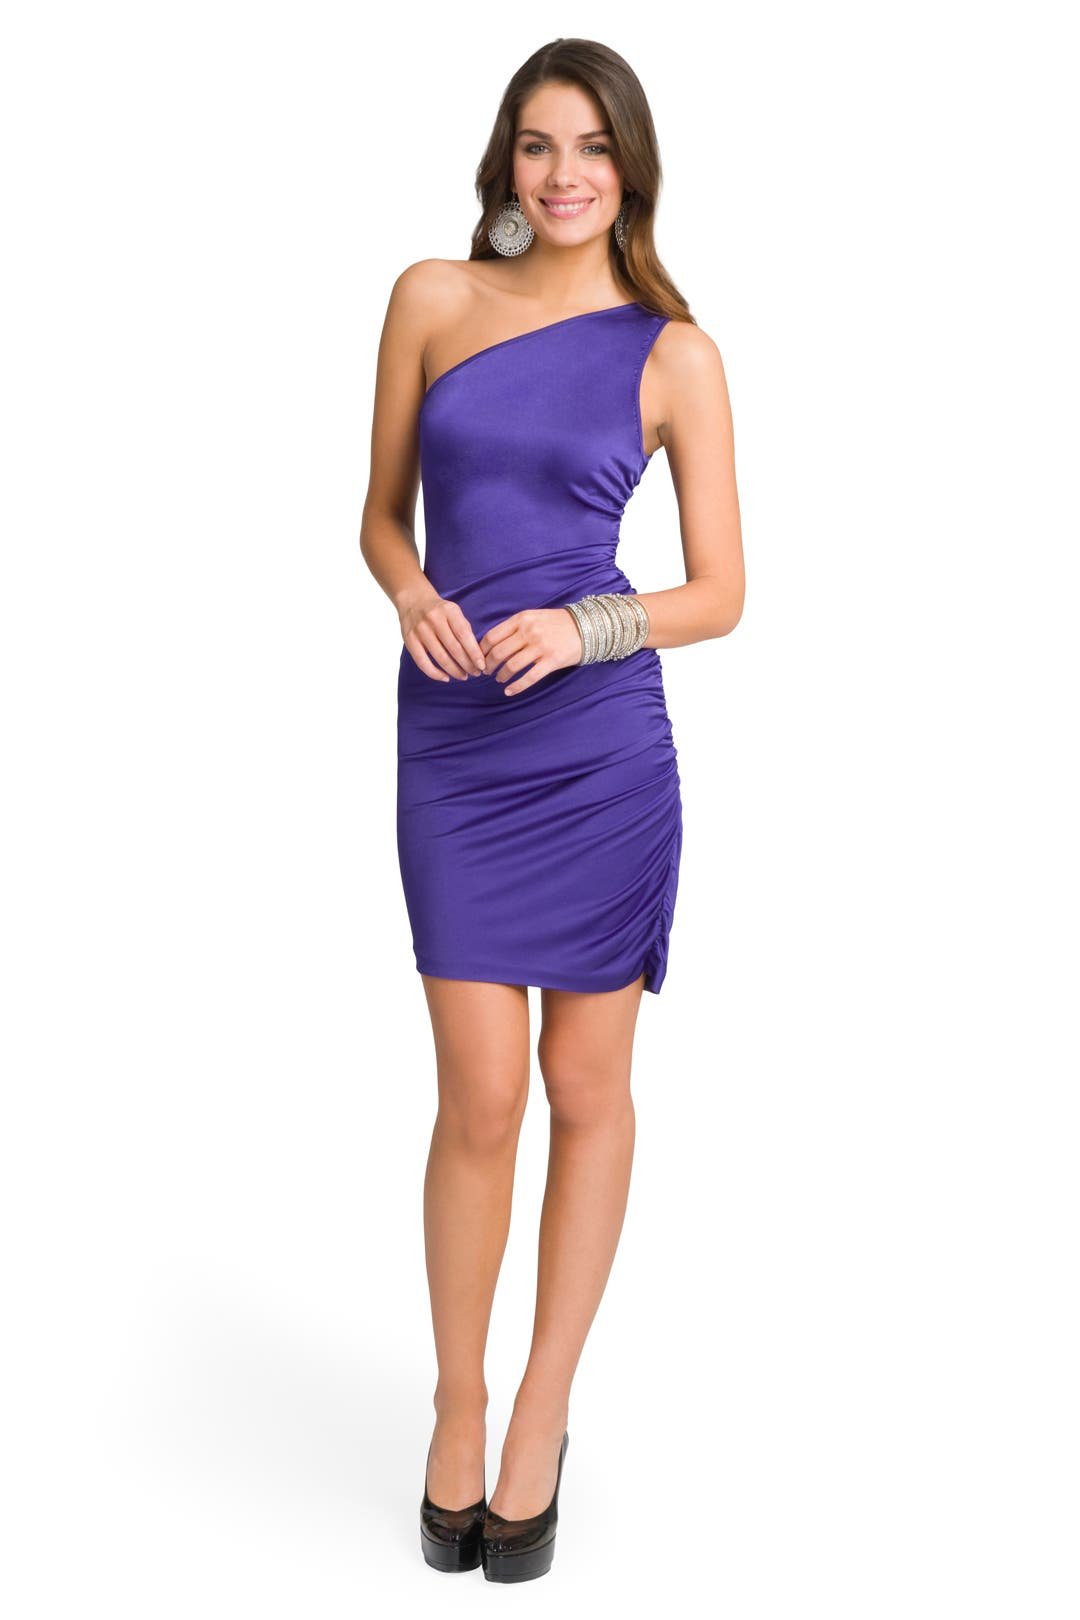 Sizzling Shoulder Dress by Halston Heritage